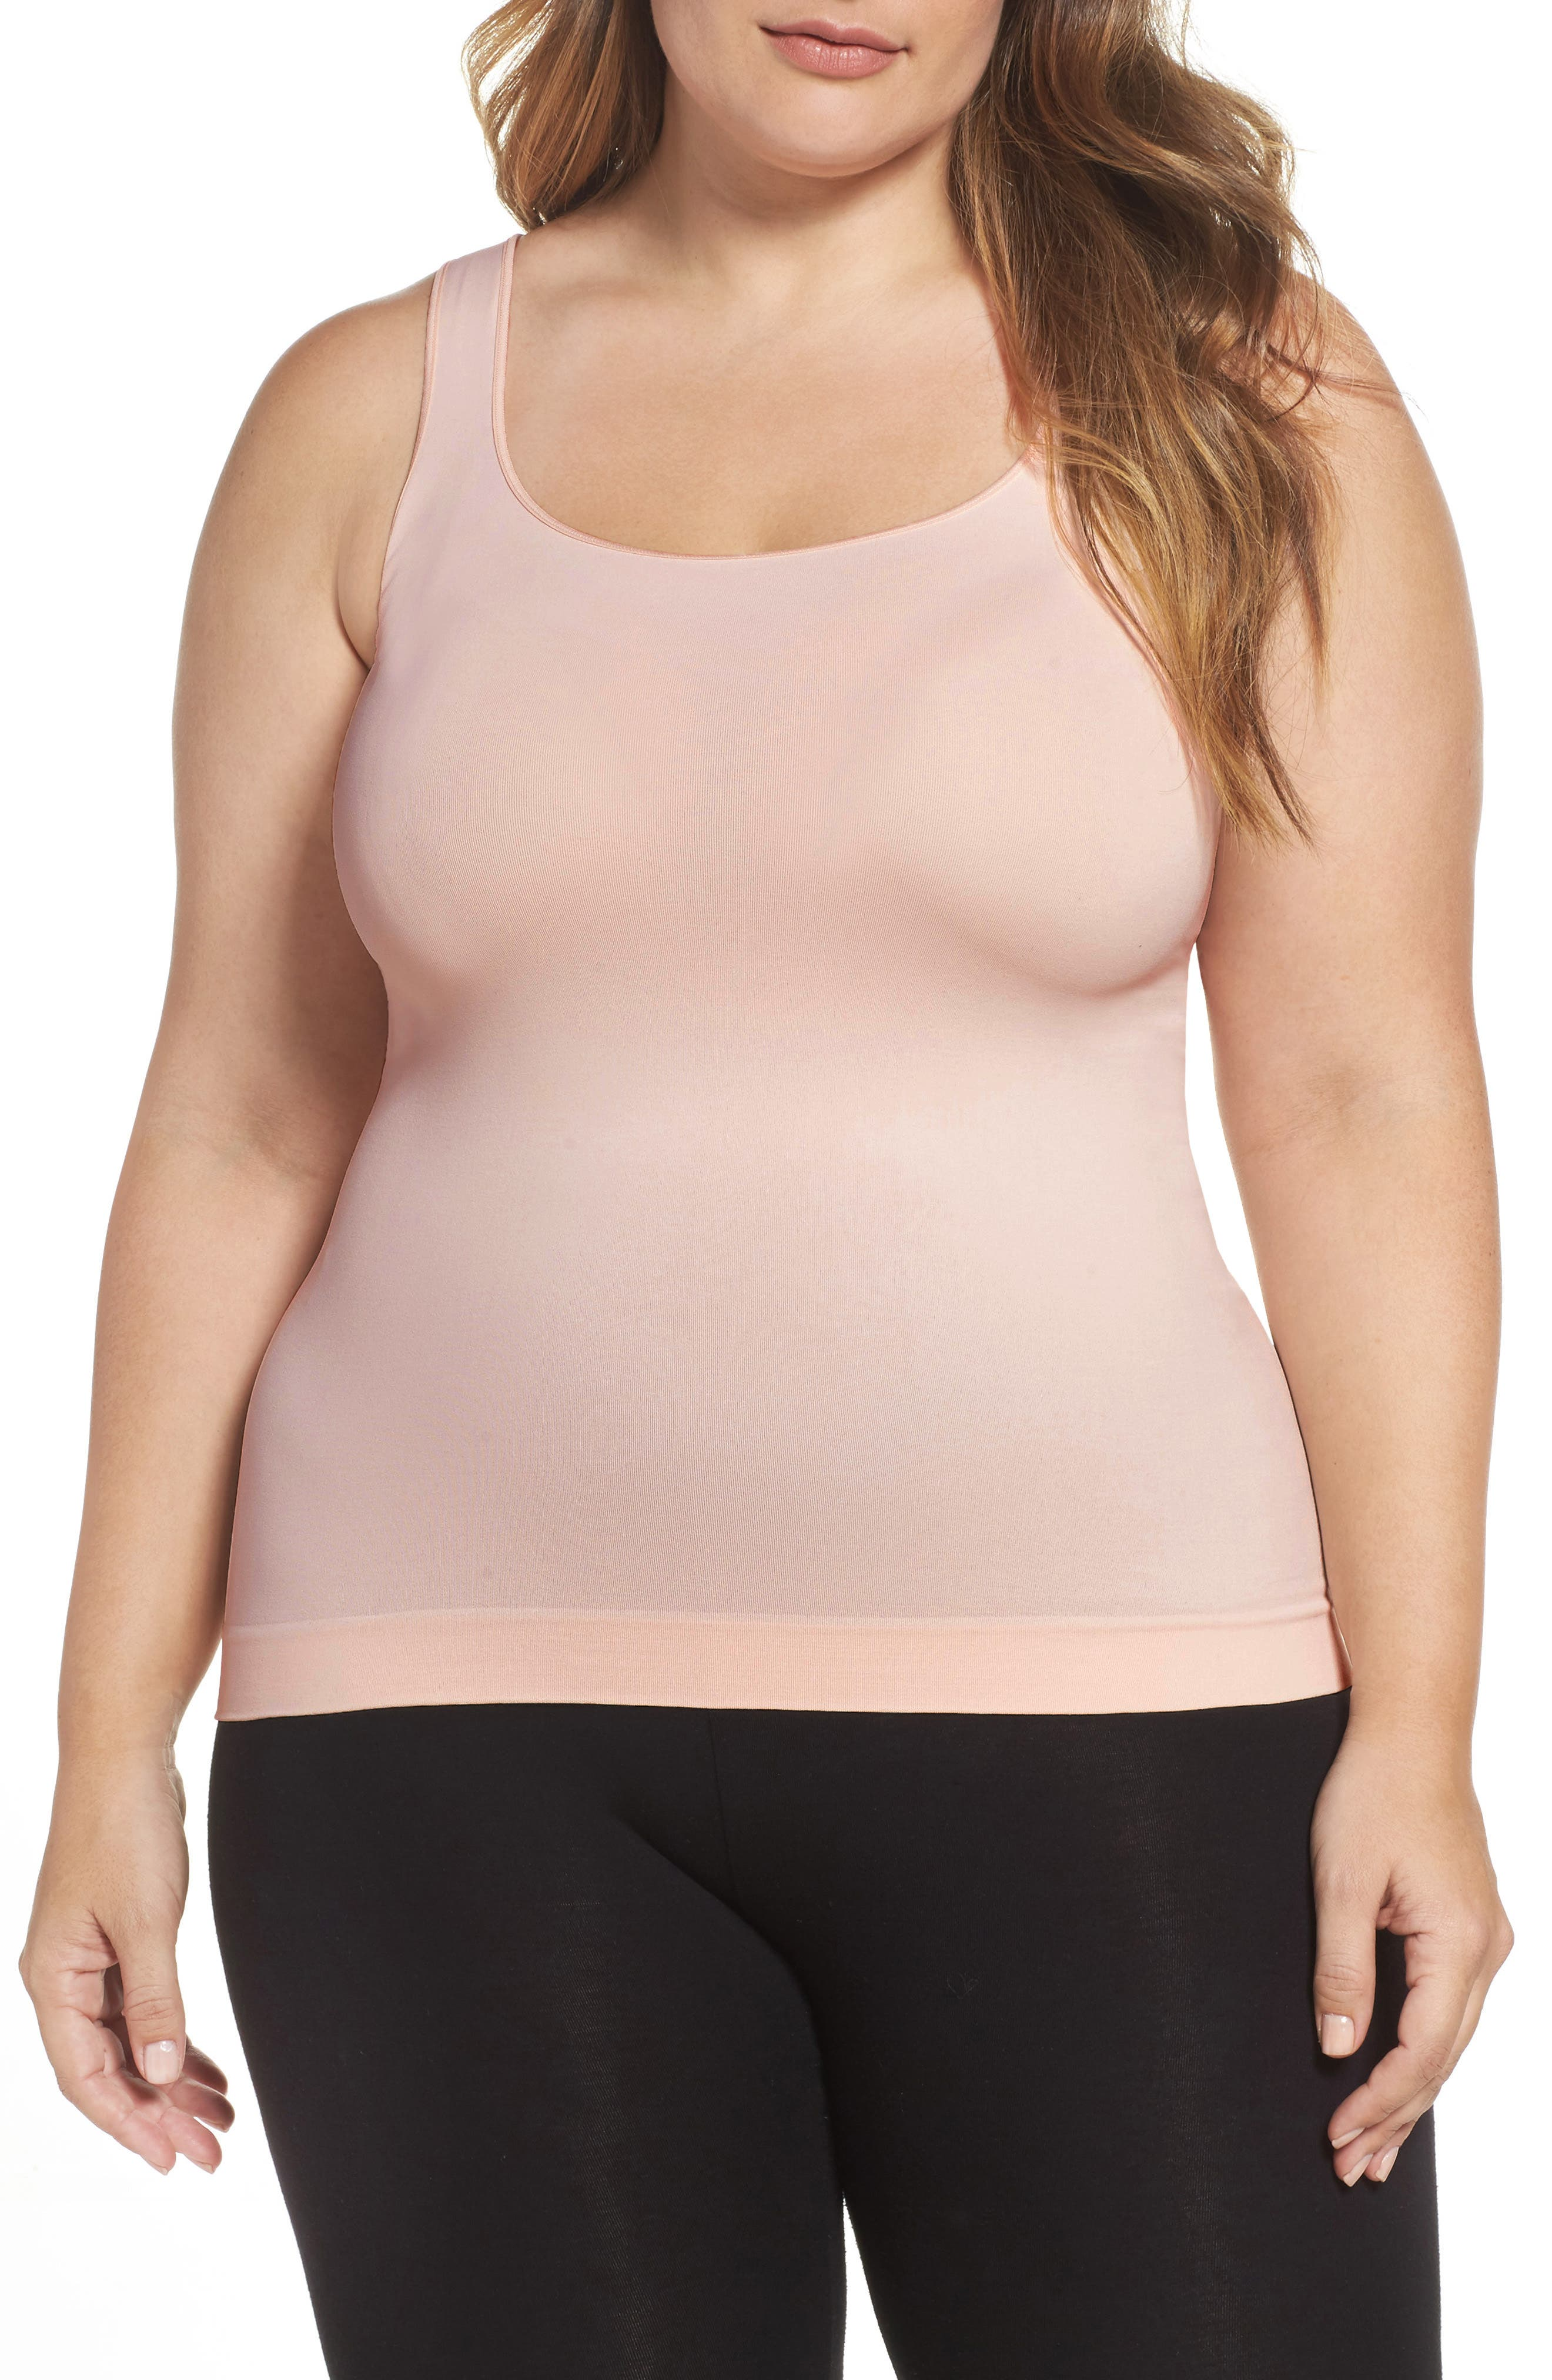 Nordstrom Lingerie Two-Way Seamless Tank (Plus Size) (2 for $36)